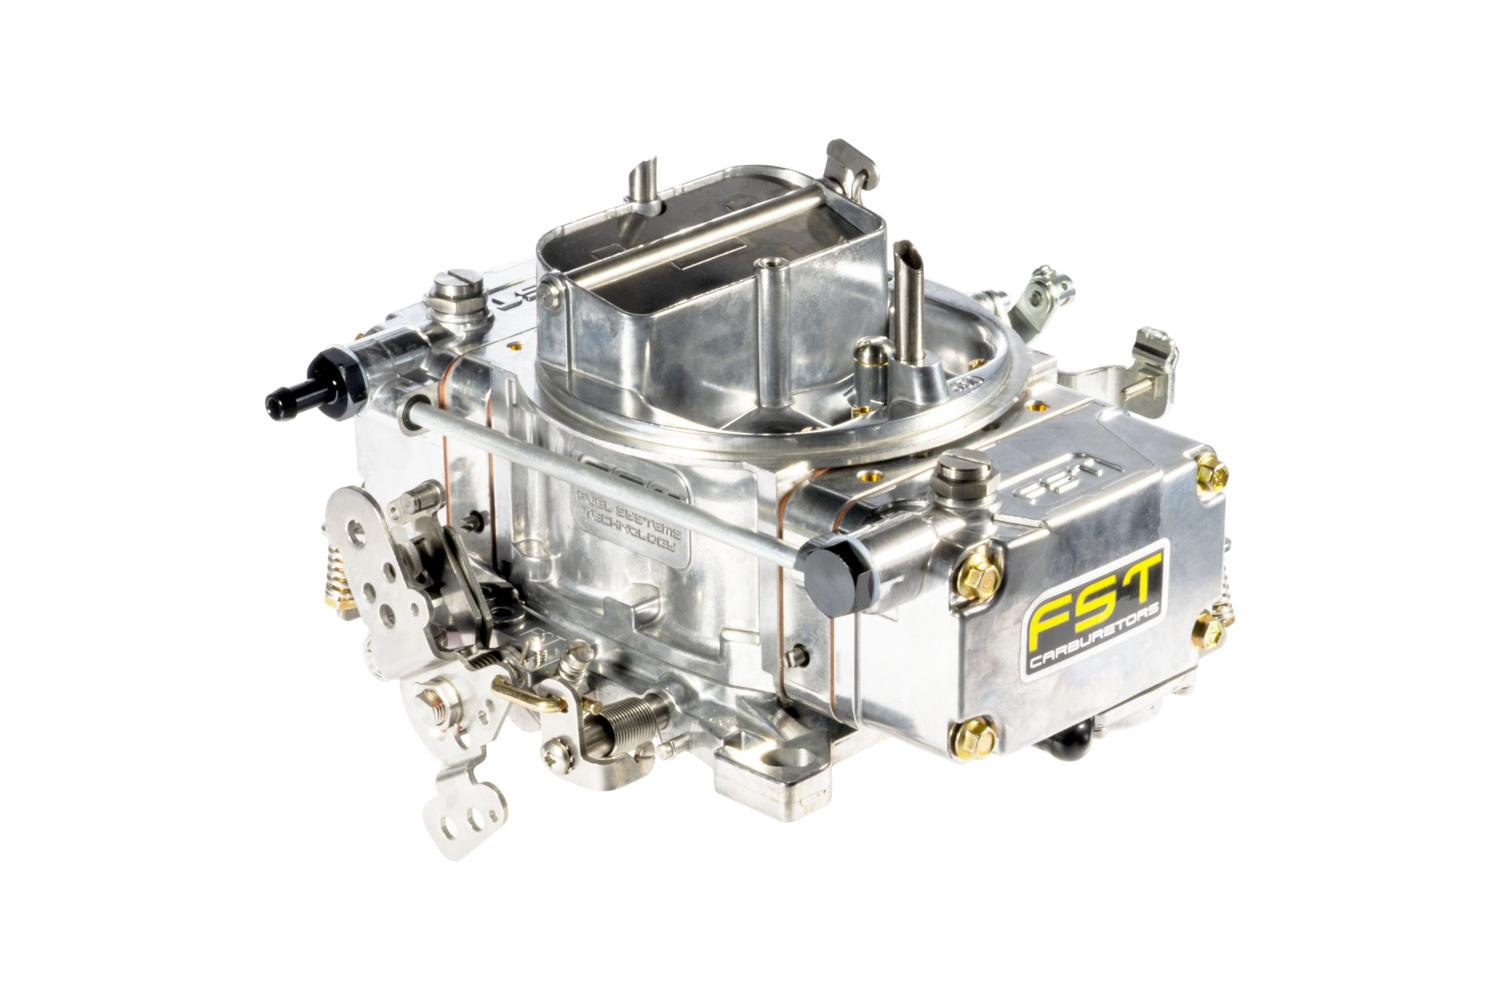 FST Performance Carburetor 41650-3 RT Carburetor 650CFM Mechanical Secondary